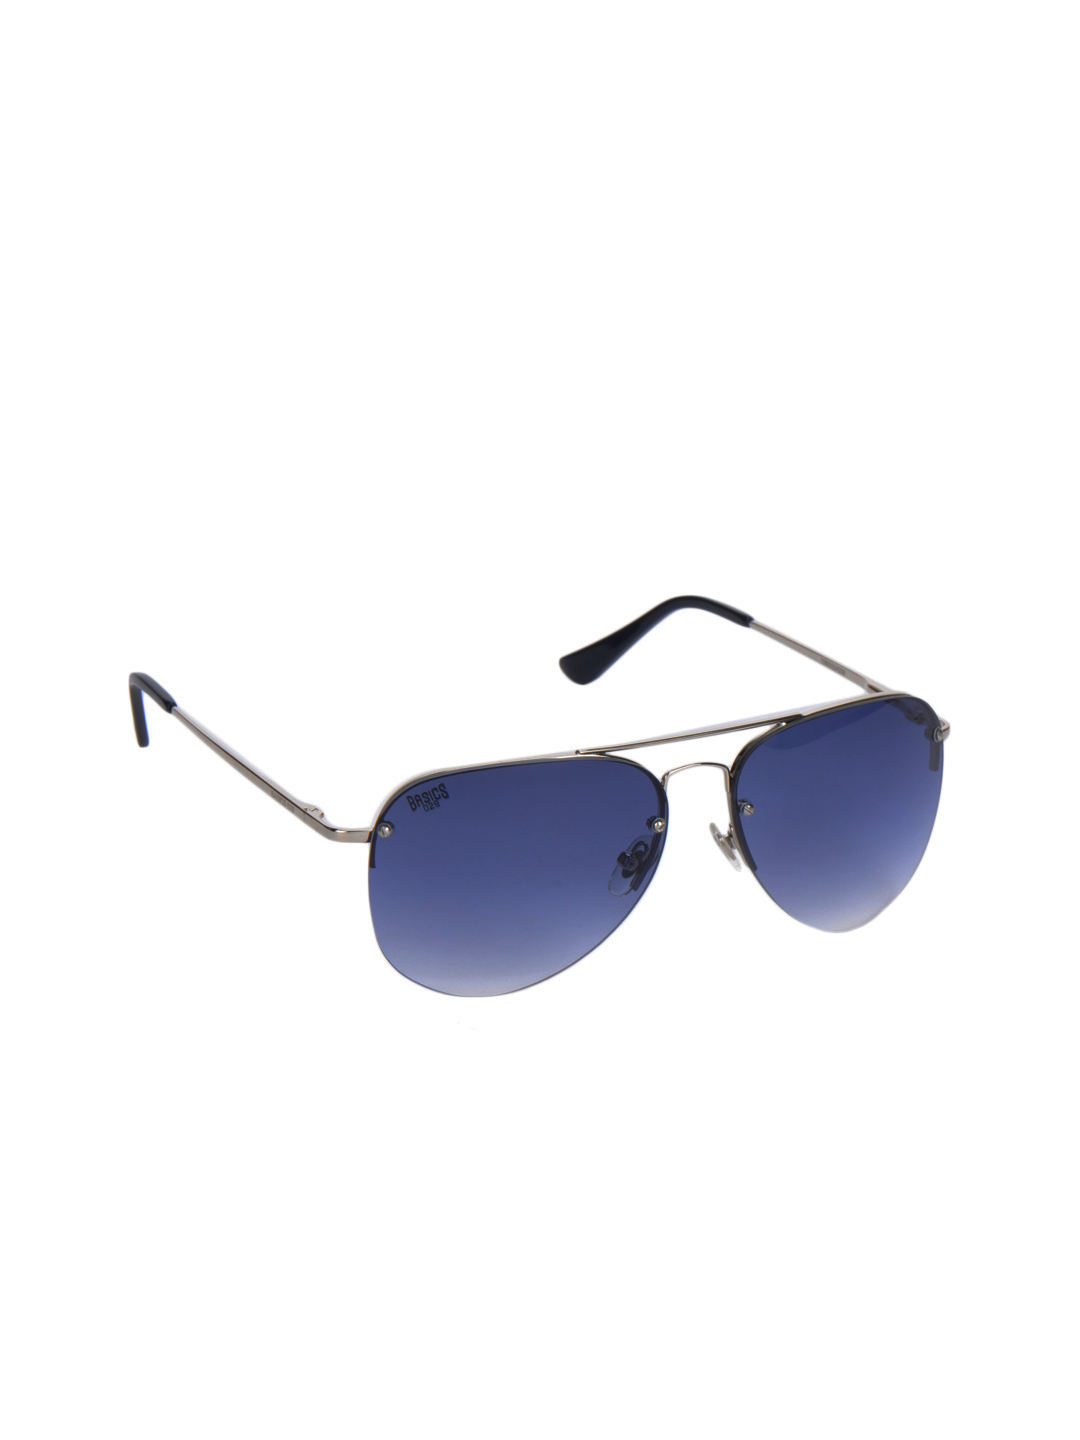 Basics Men Sunglasses